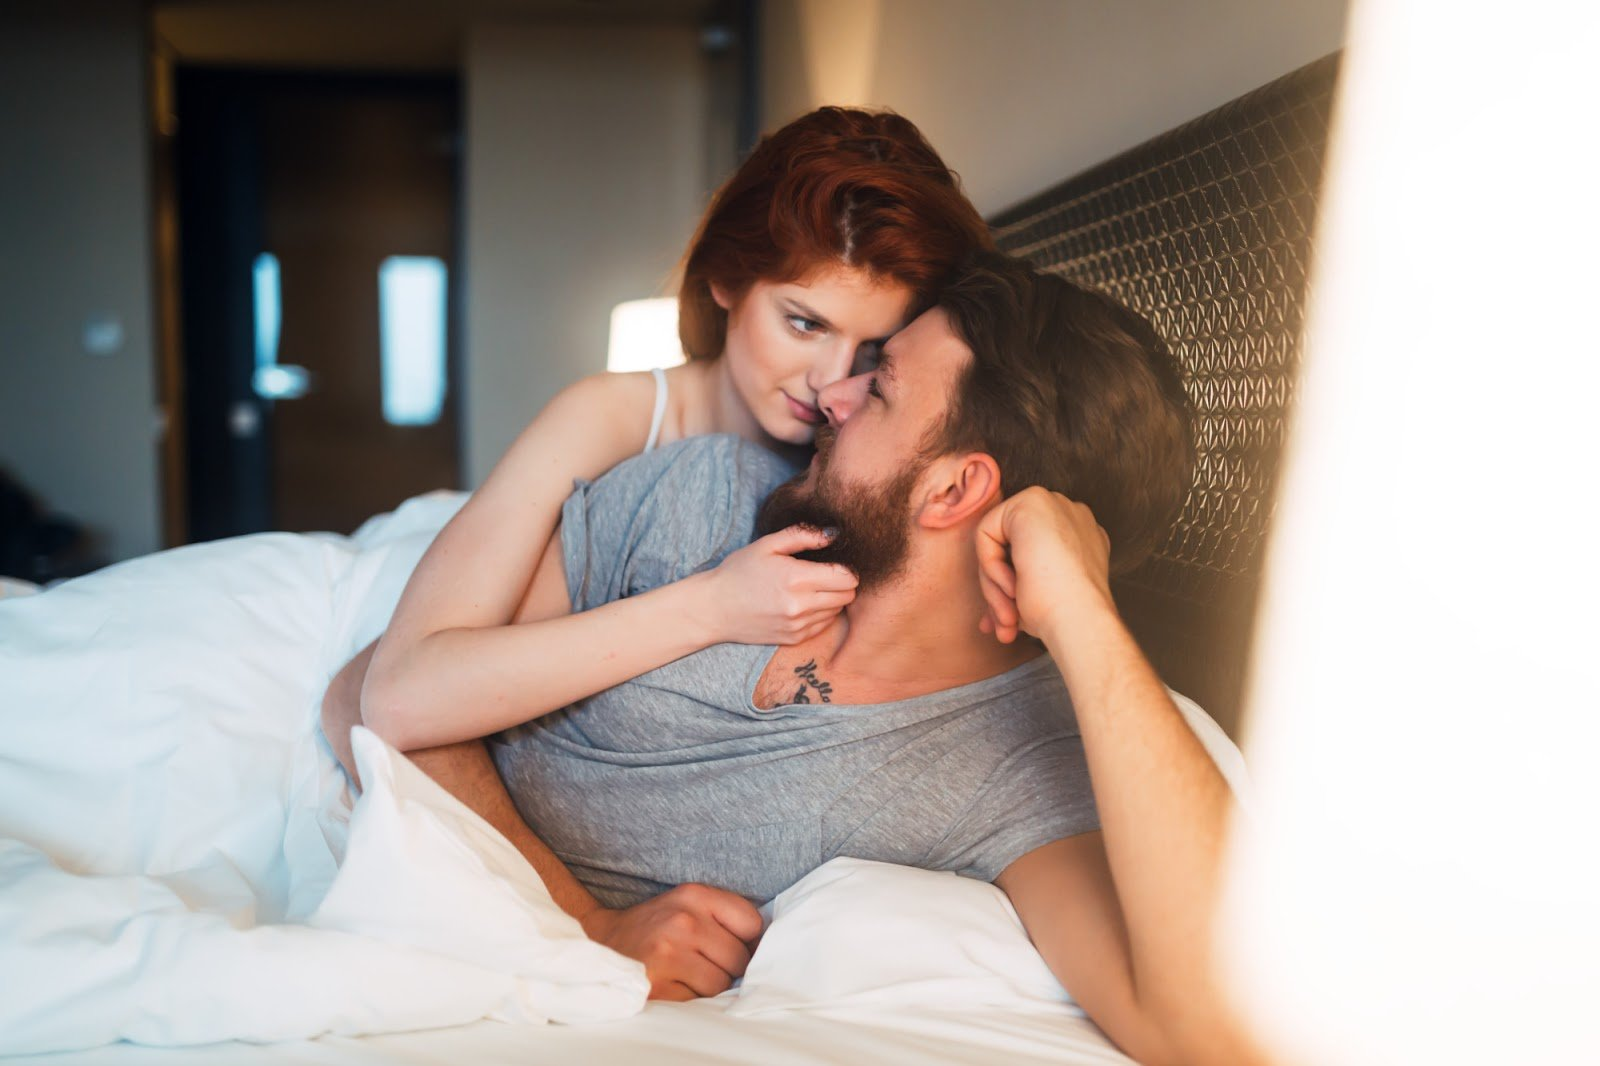 Does Erectile Dysfunction Shockwave Therapy Hurt? What to Know First